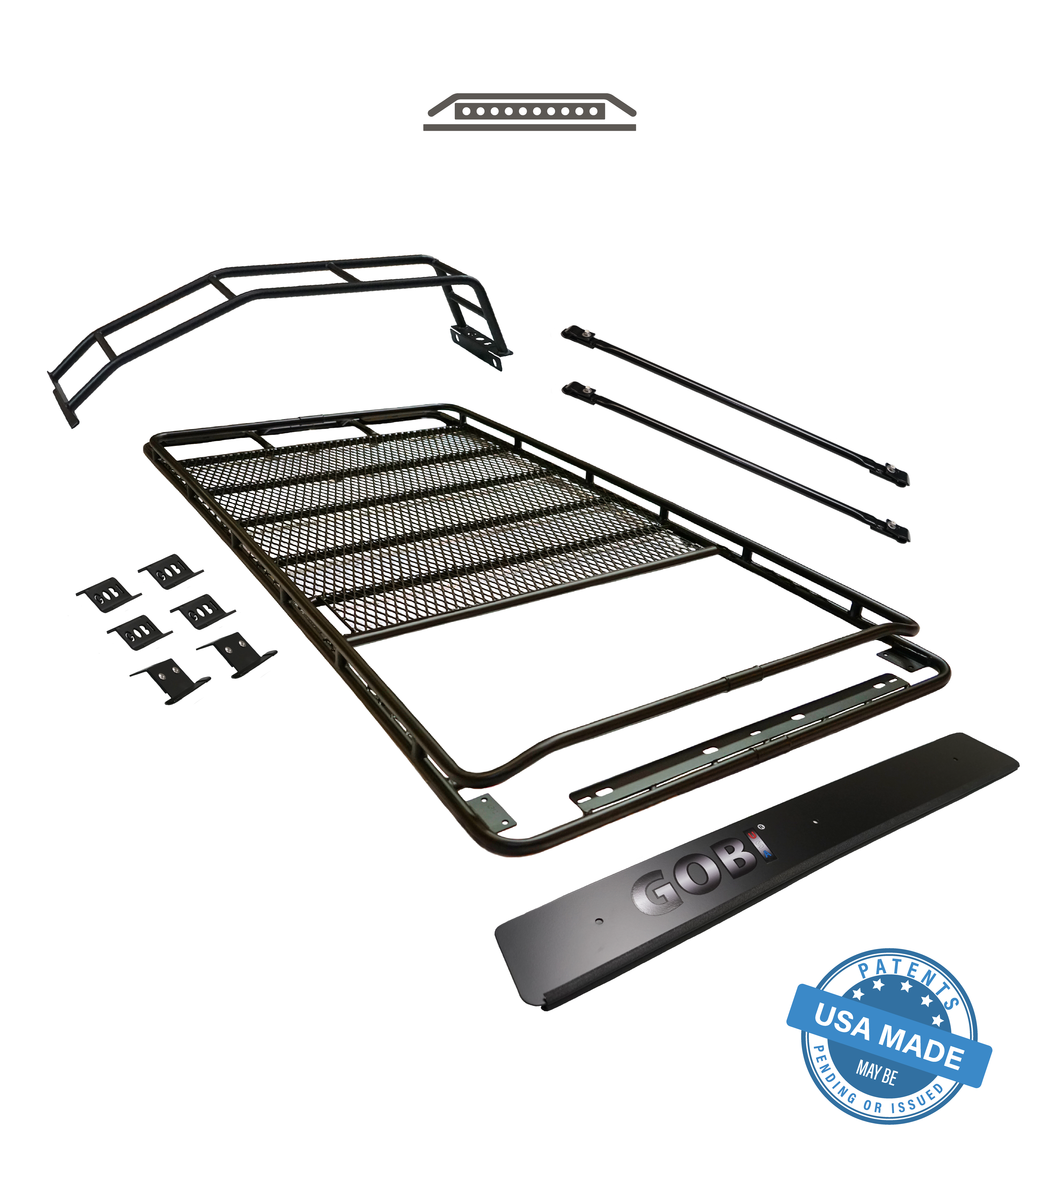 Gobi - Stealth Rack - Light Bar Set Up - Sun Roof - Toyota 4Runner 5th Gen 2010-2021 - 4x4 Runners